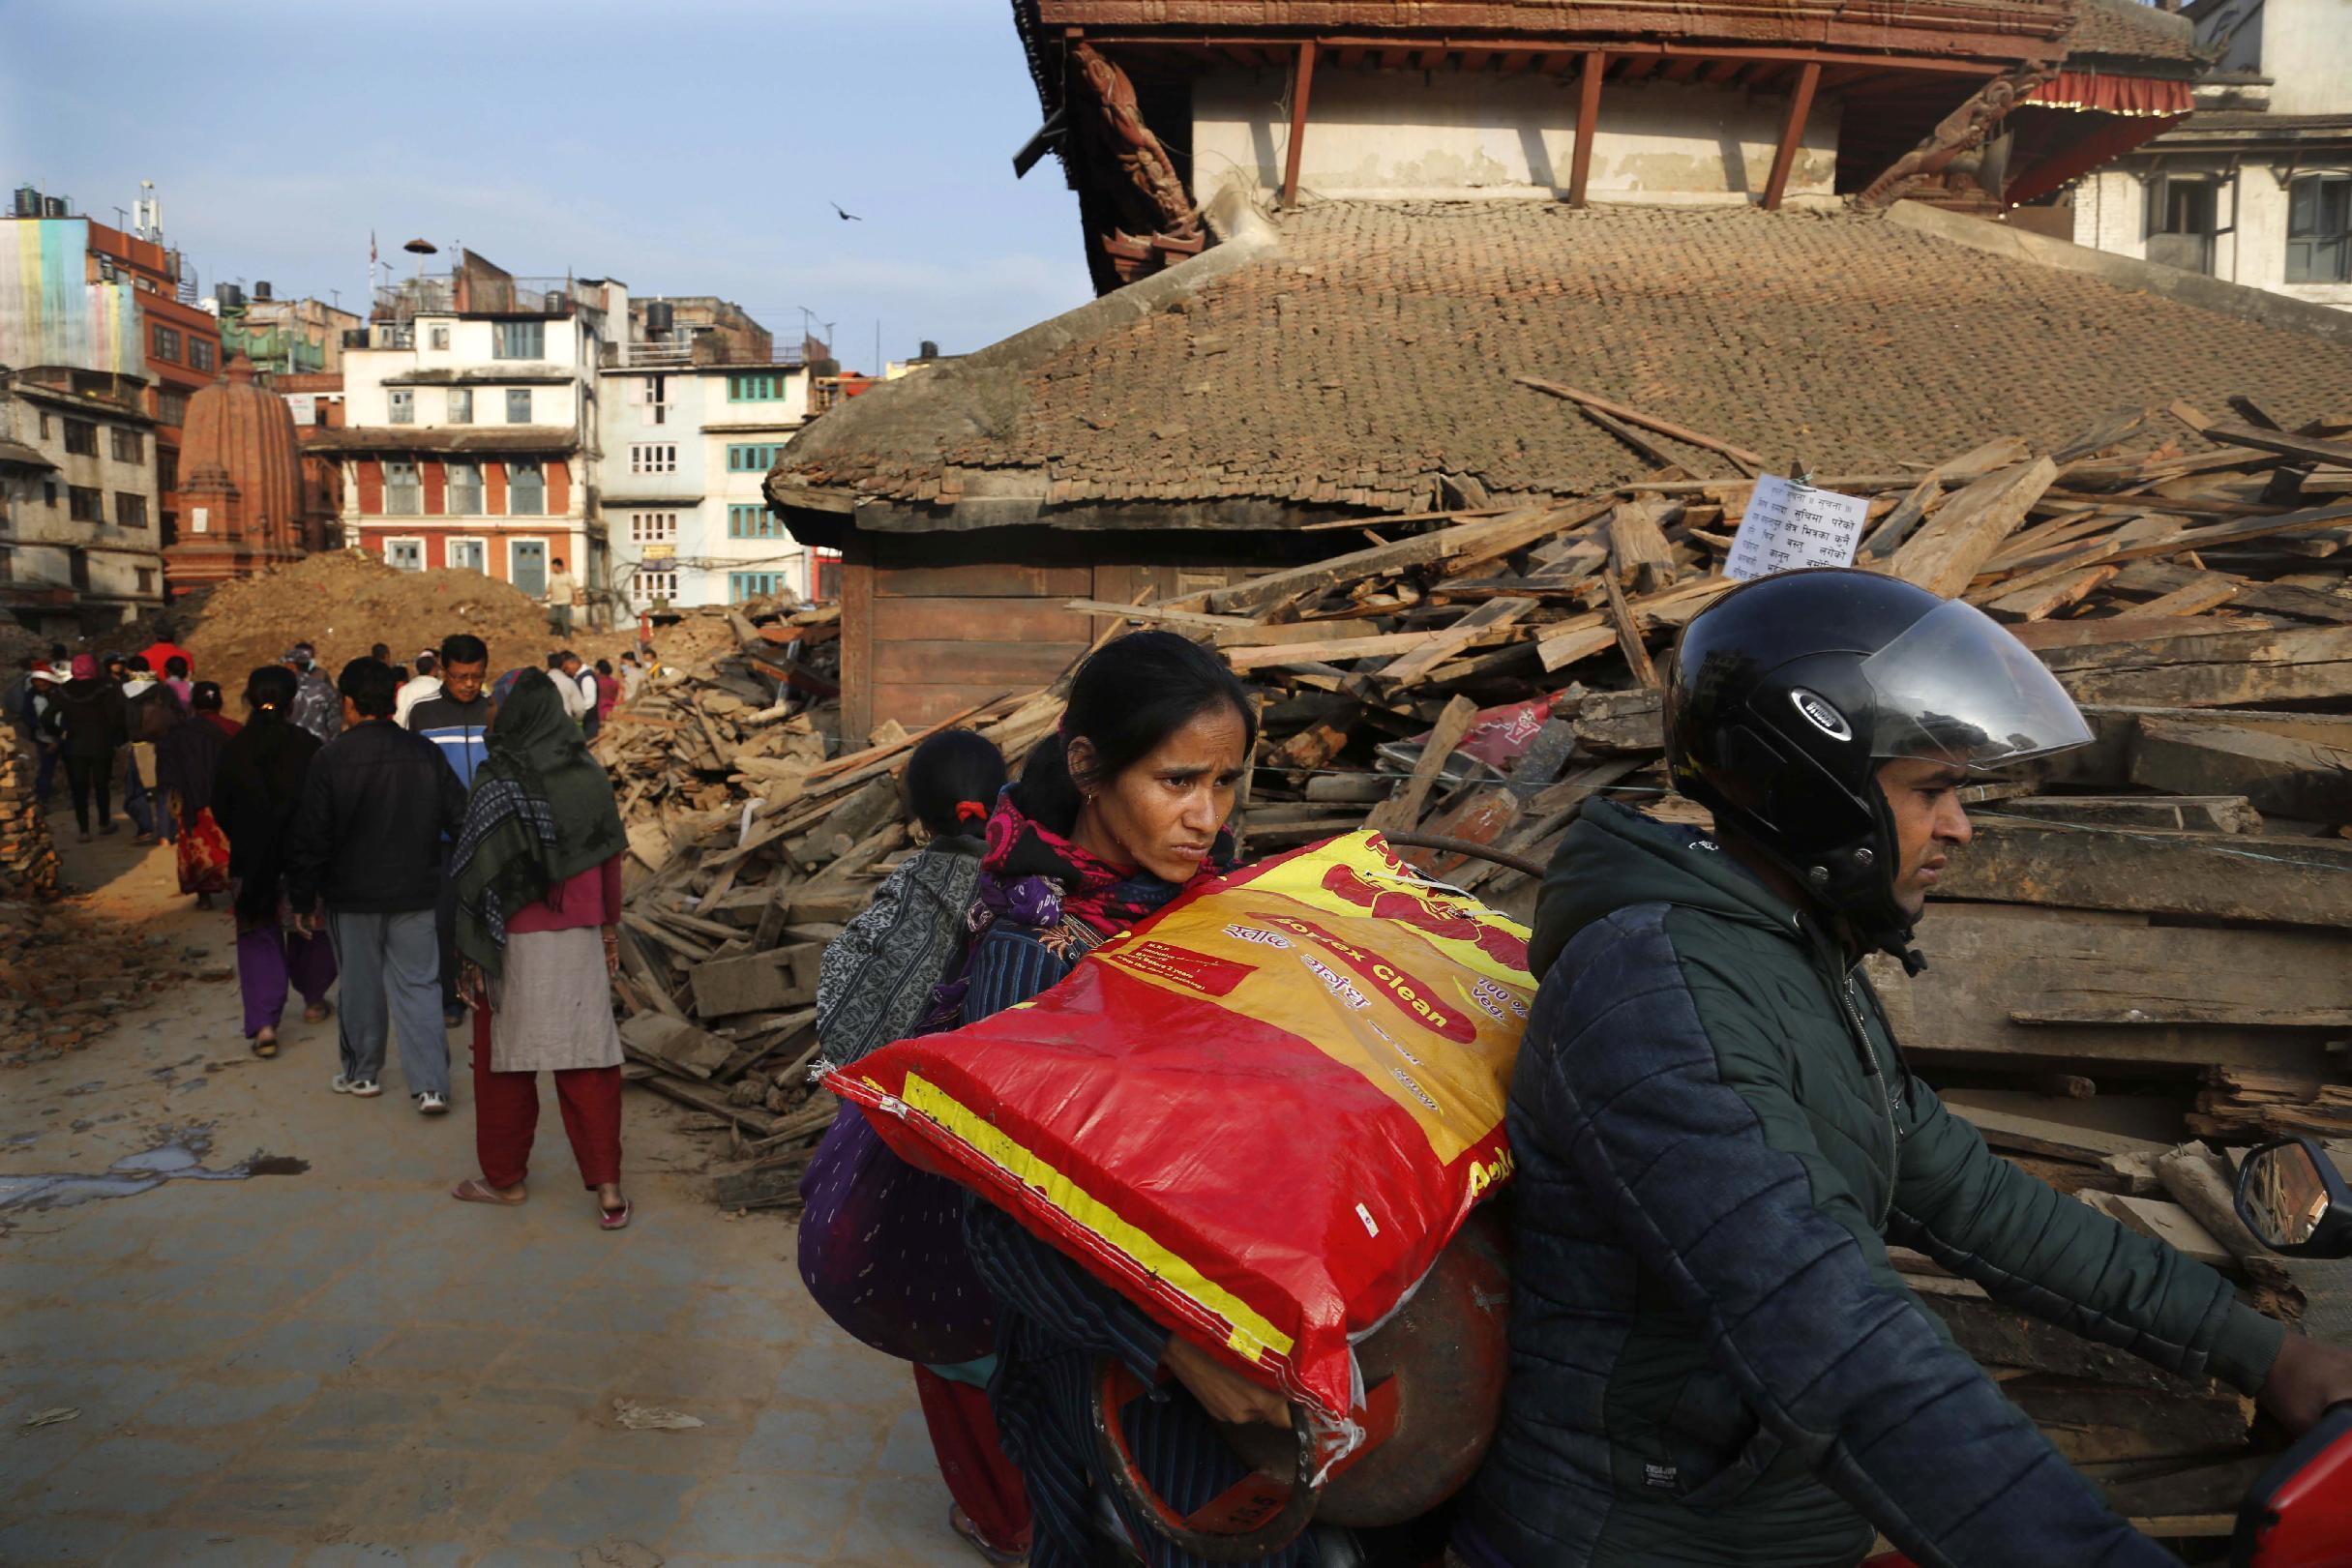 The Latest on Nepal: Quake death toll climbs past 6,600